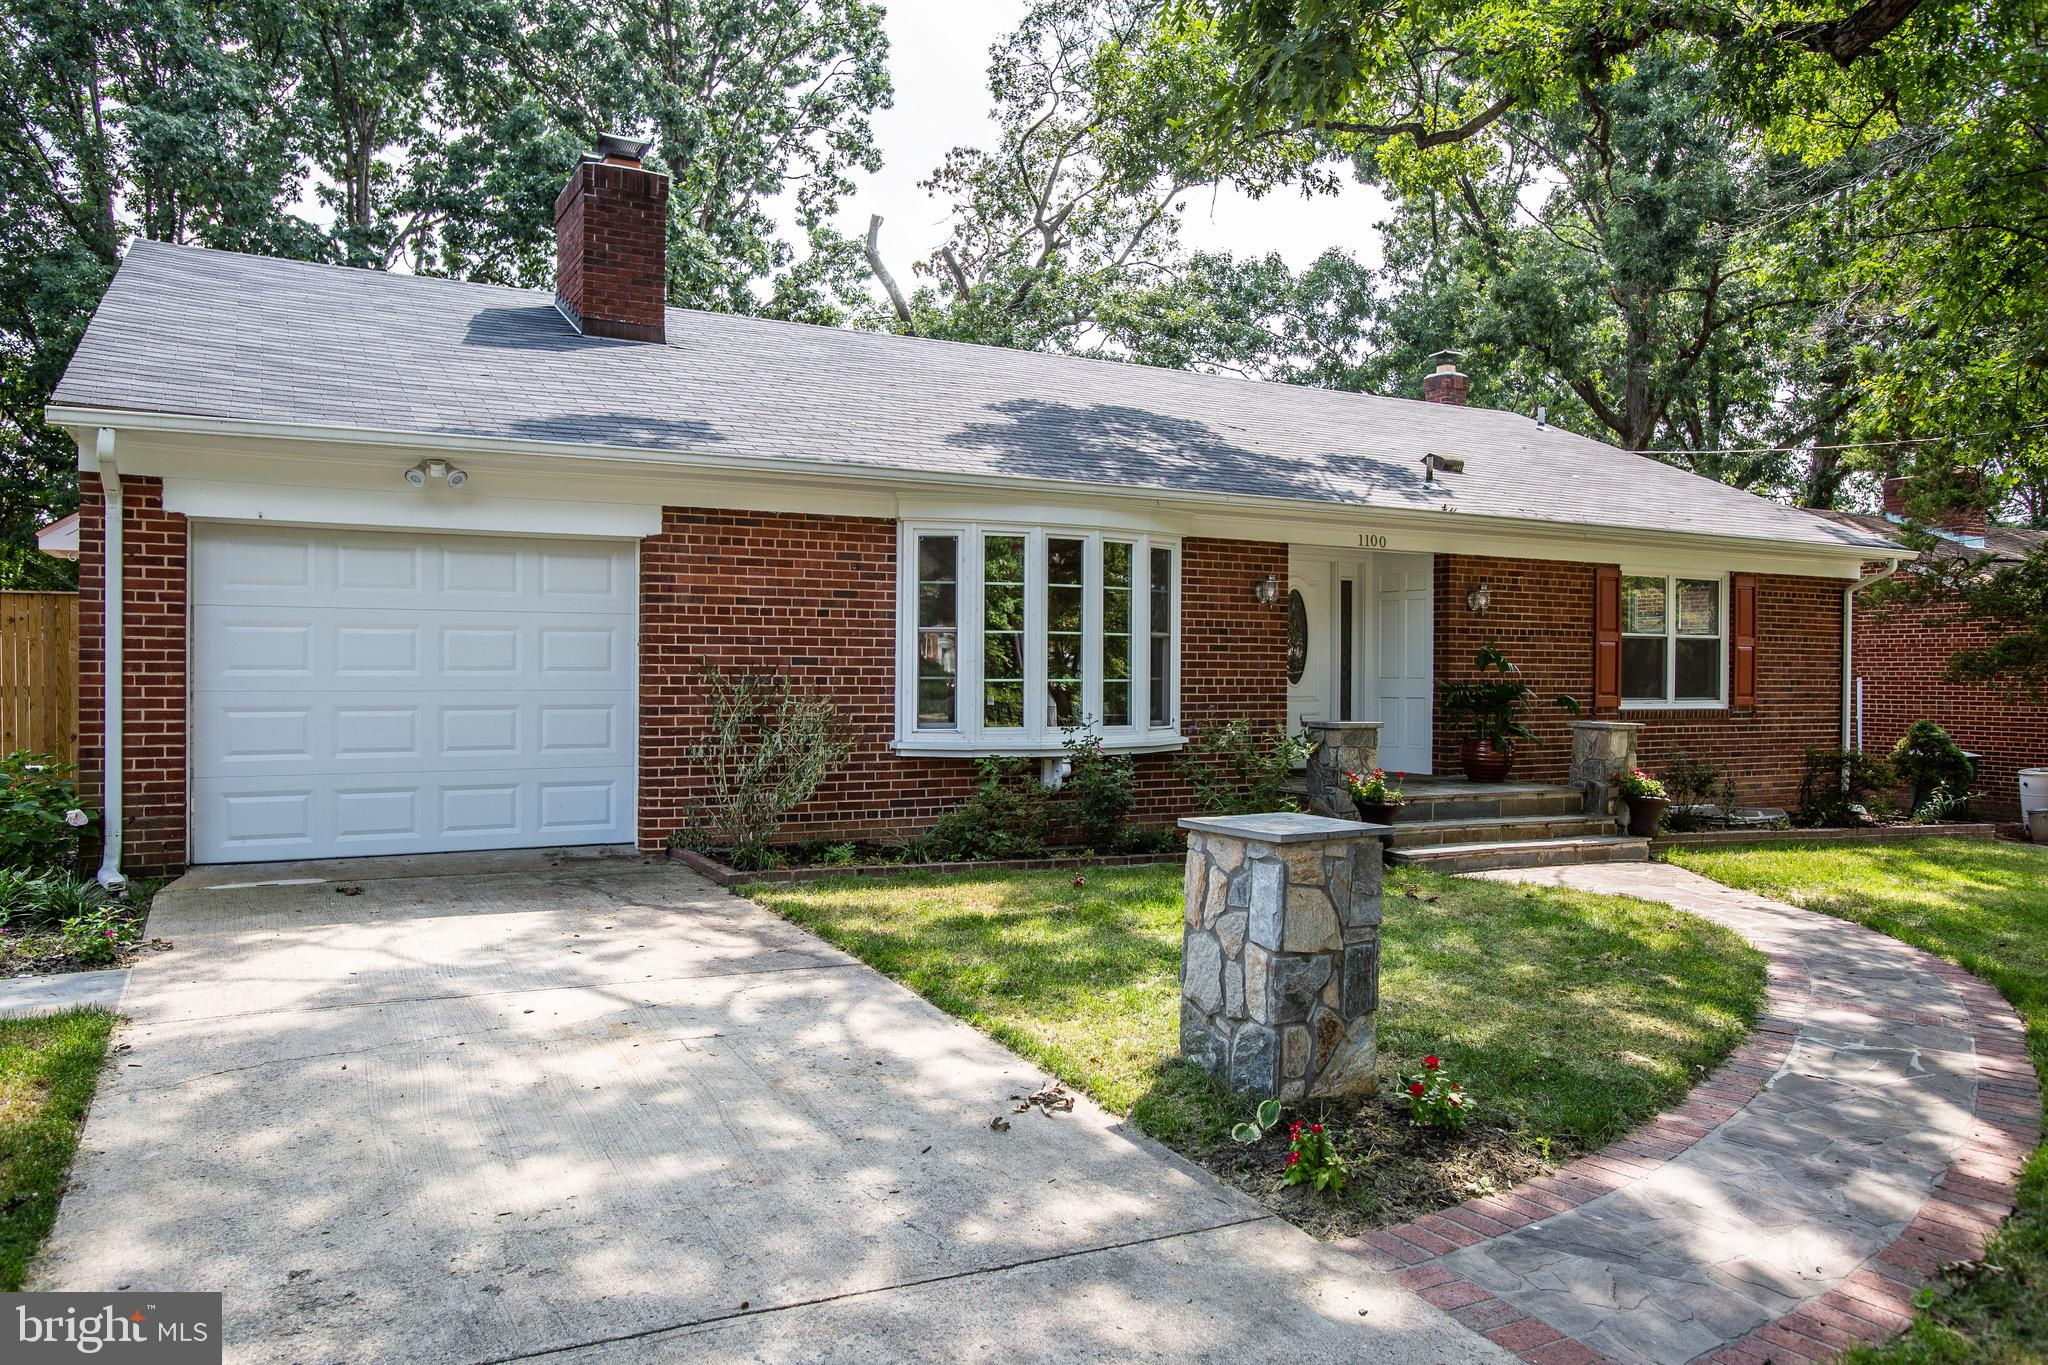 Newly renovated home with over 3600SQFT, gourmet kitchen, gleaming hardwood floors, fully finished basement, updated bathrooms, fully fenced rear yard with stone patio.